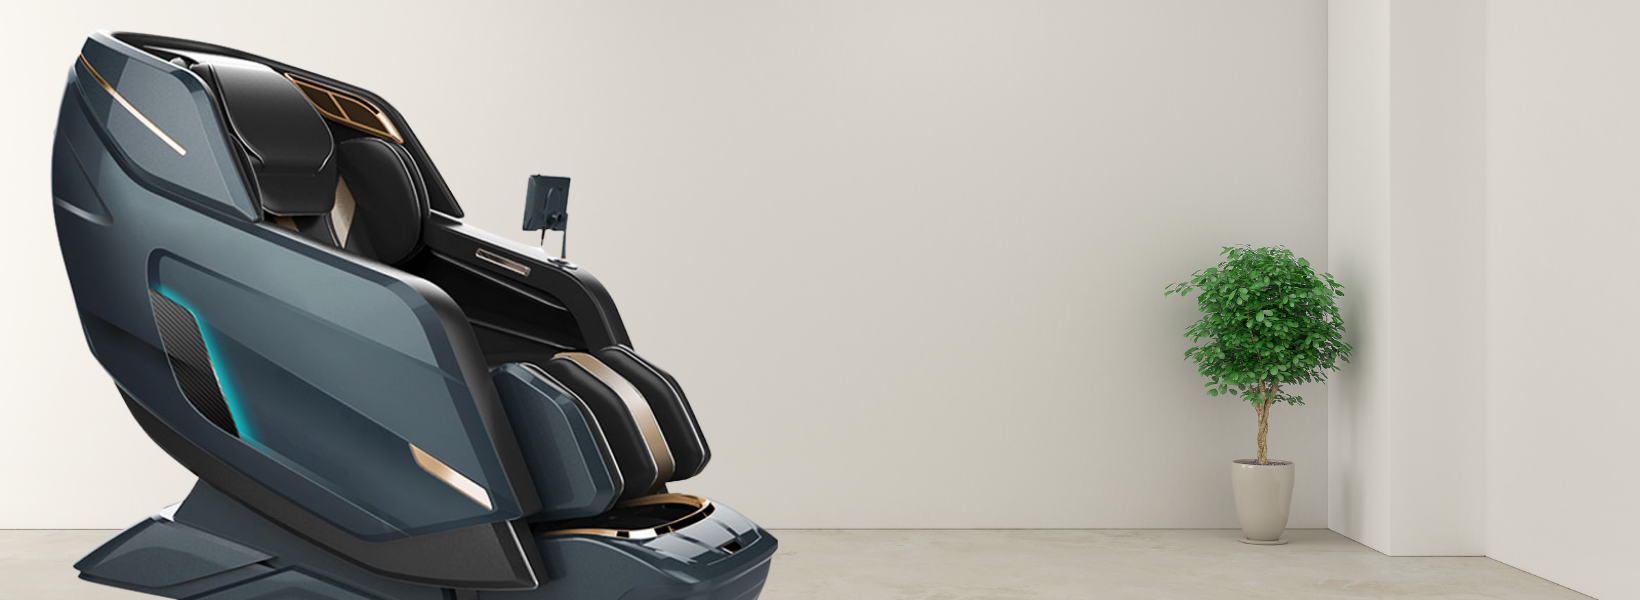 """A Breakthrough in Robotic Massage Technology Not only create a sense of relaxation, comfort but also relieve tension. In today's technology, massage chairs also apply special techniques such as punching, pressing, kneading, flapping, pushing, pulling, stretching, help visibly improve blood circulation and health. Especially, with Floridian 4D Massage Expert Chair, applying """"4D Air Compression Massage Mechanism"""" technology with 11 automatic massage exercises and the ability to accurately detect acupuncture points."""